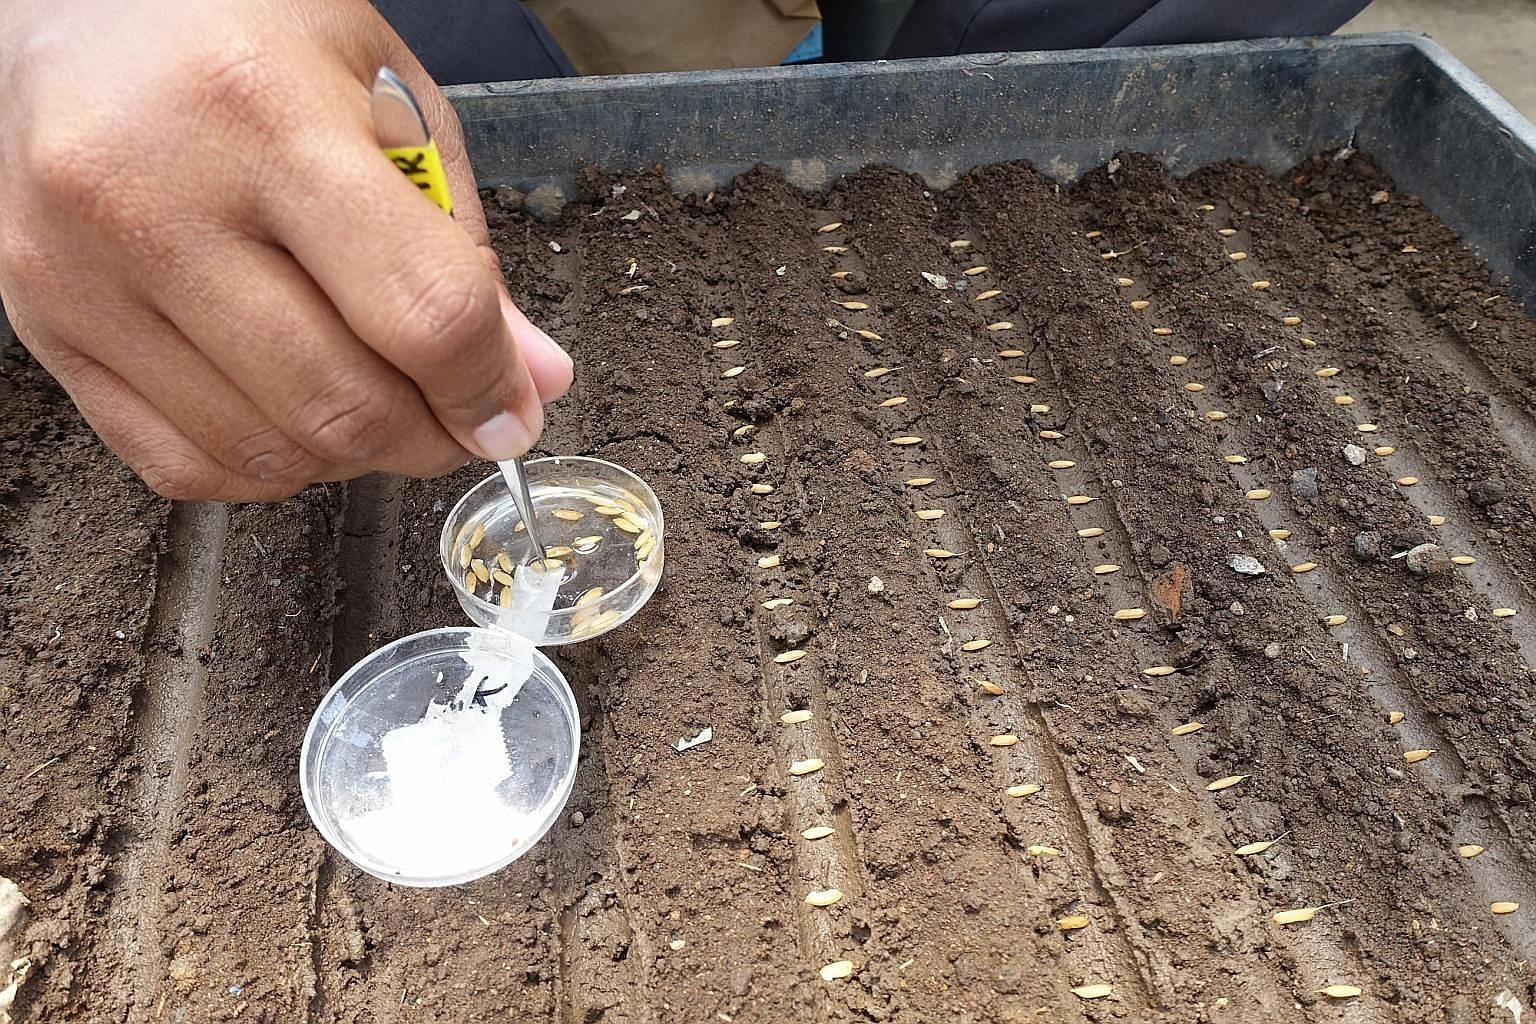 Left: Rice seeds being planted for an experiment at the International Rice Research Institute. Far left: Rice plant being prepared for a pollination process that will bring out certain traits.